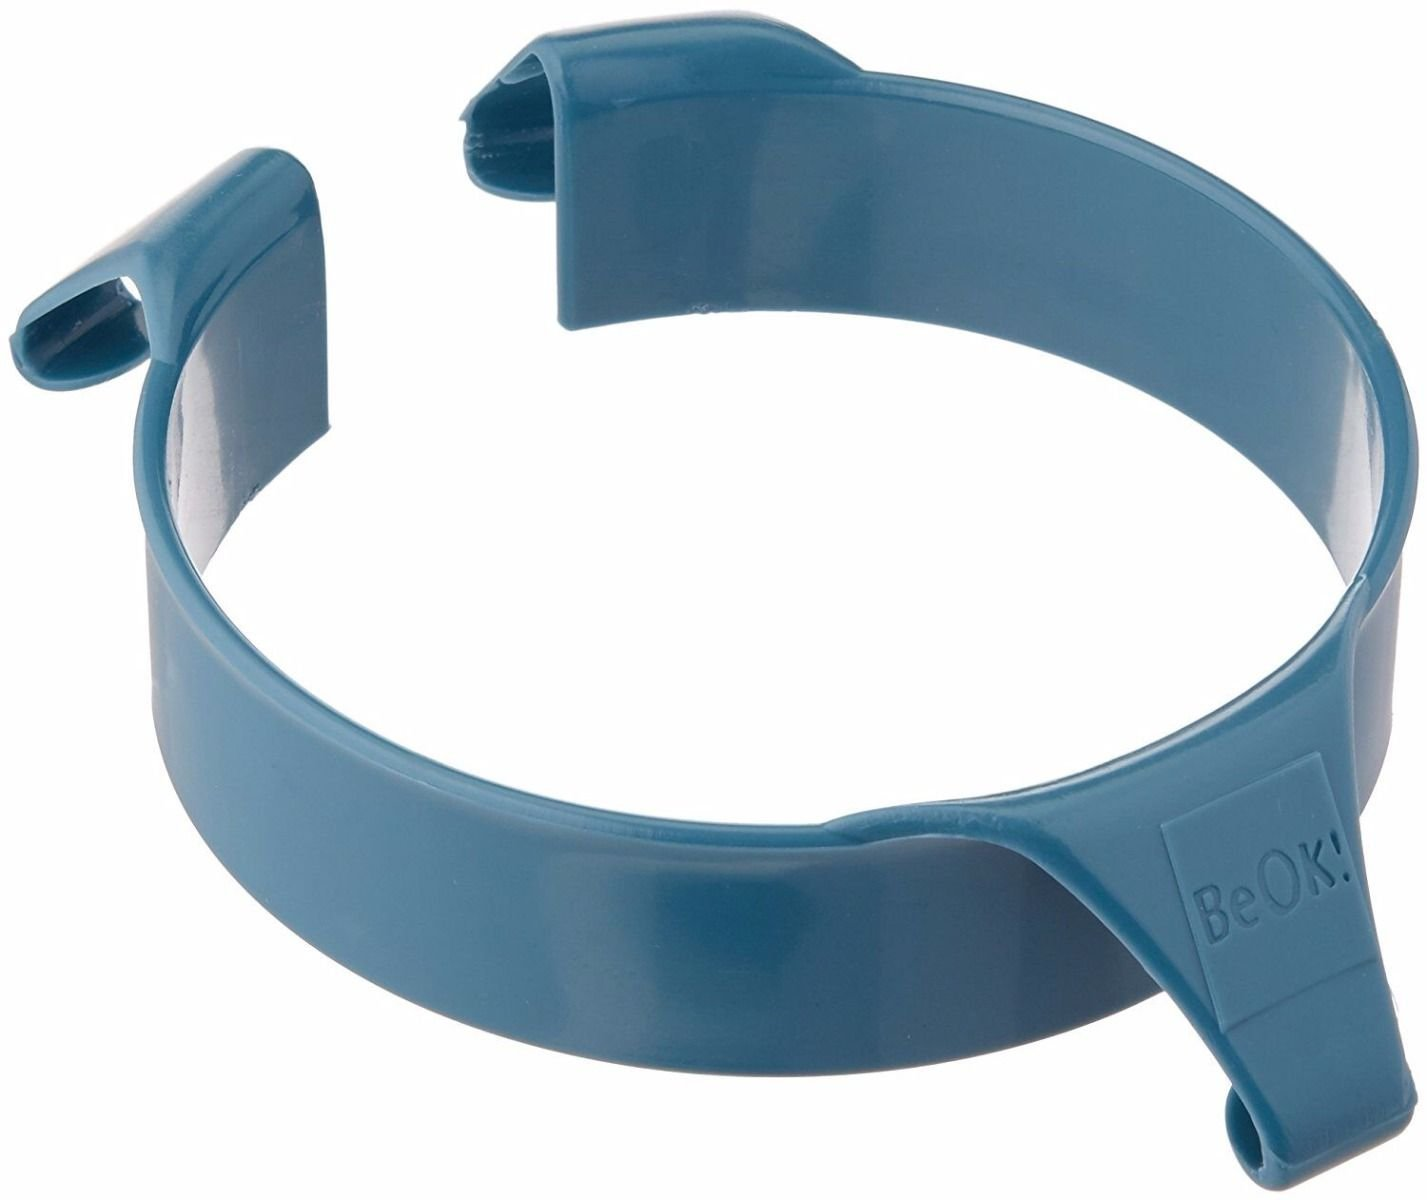 Patterson Medical Plastic Food Guard - Blue